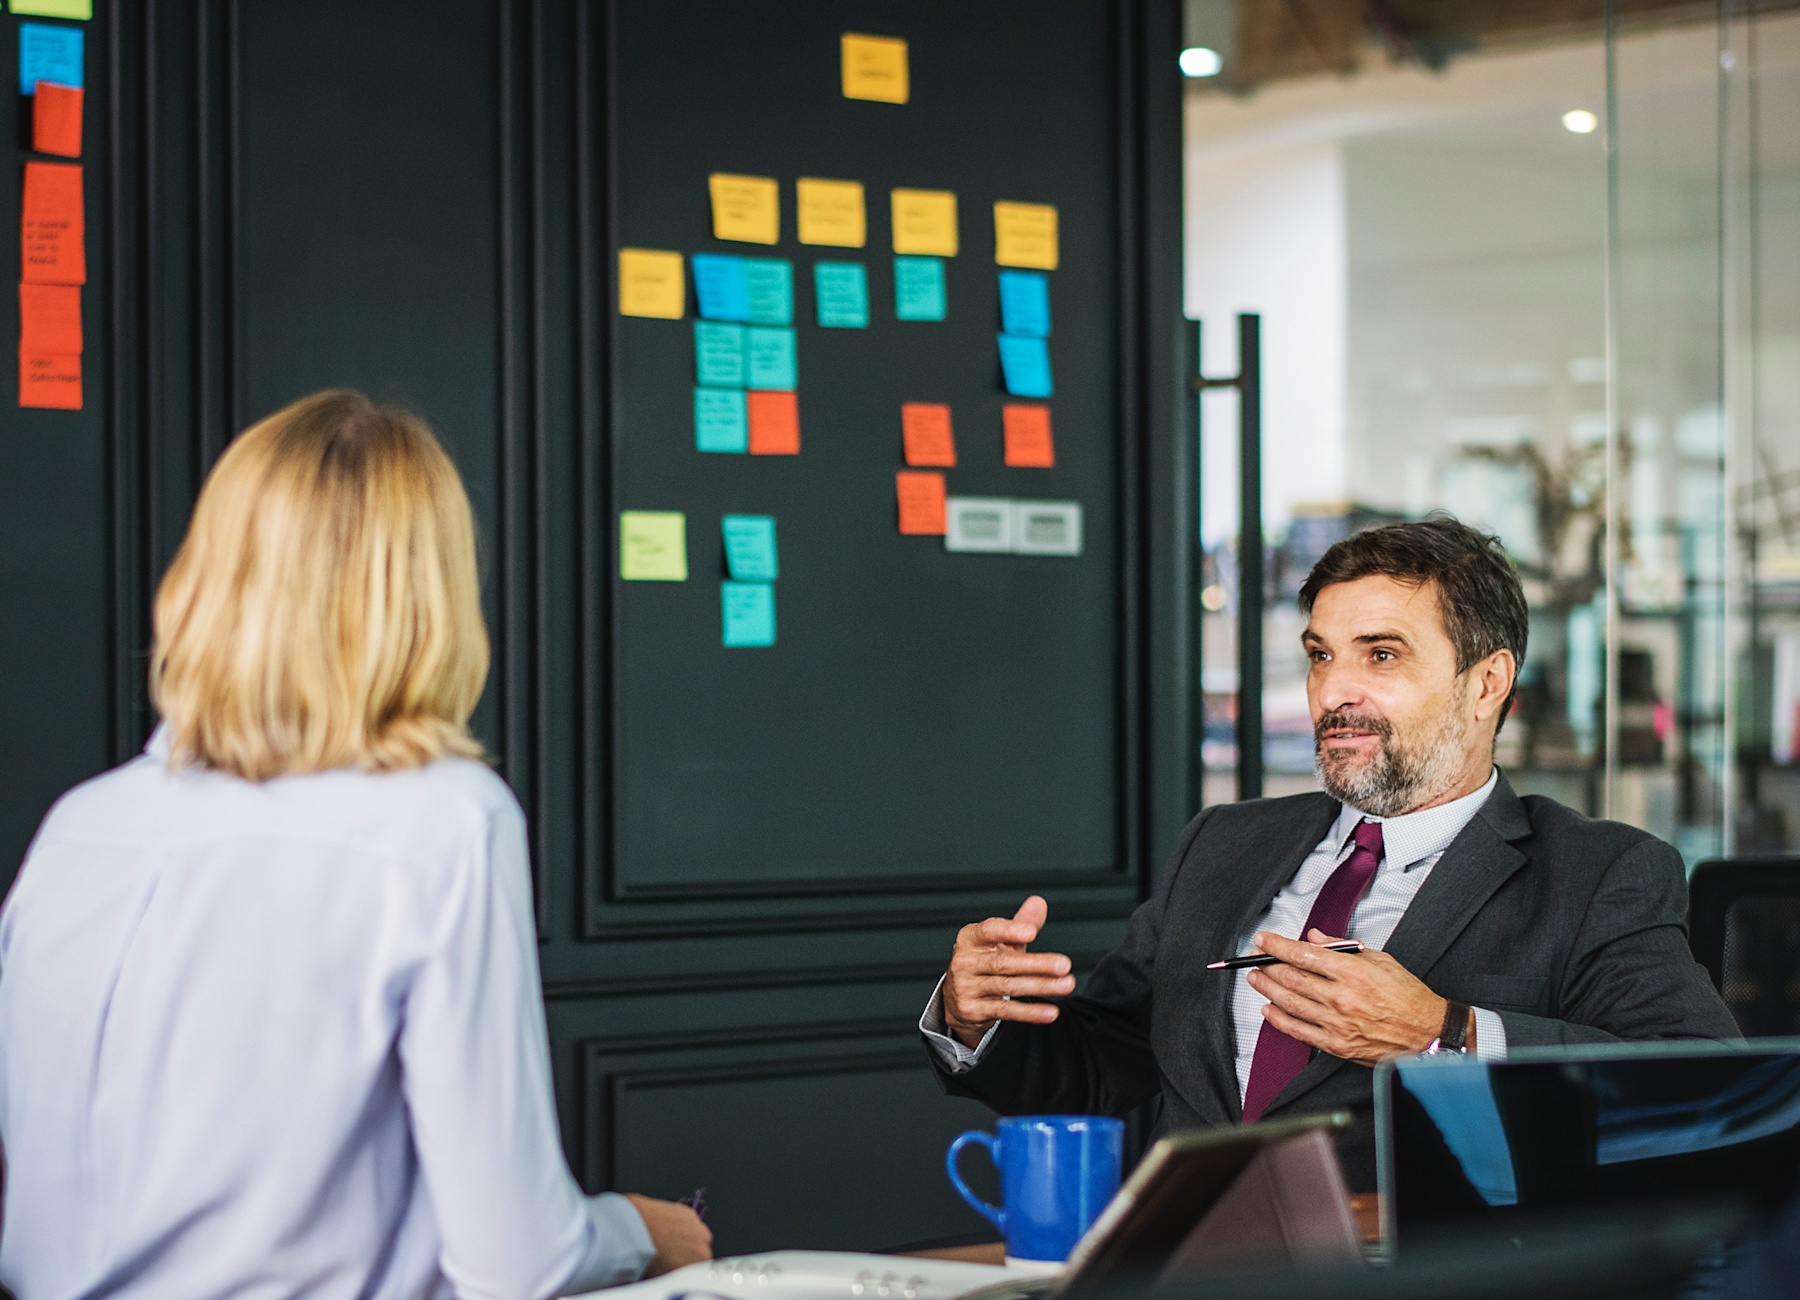 5 Tips for Startups Looking to Improve Their Interview Process